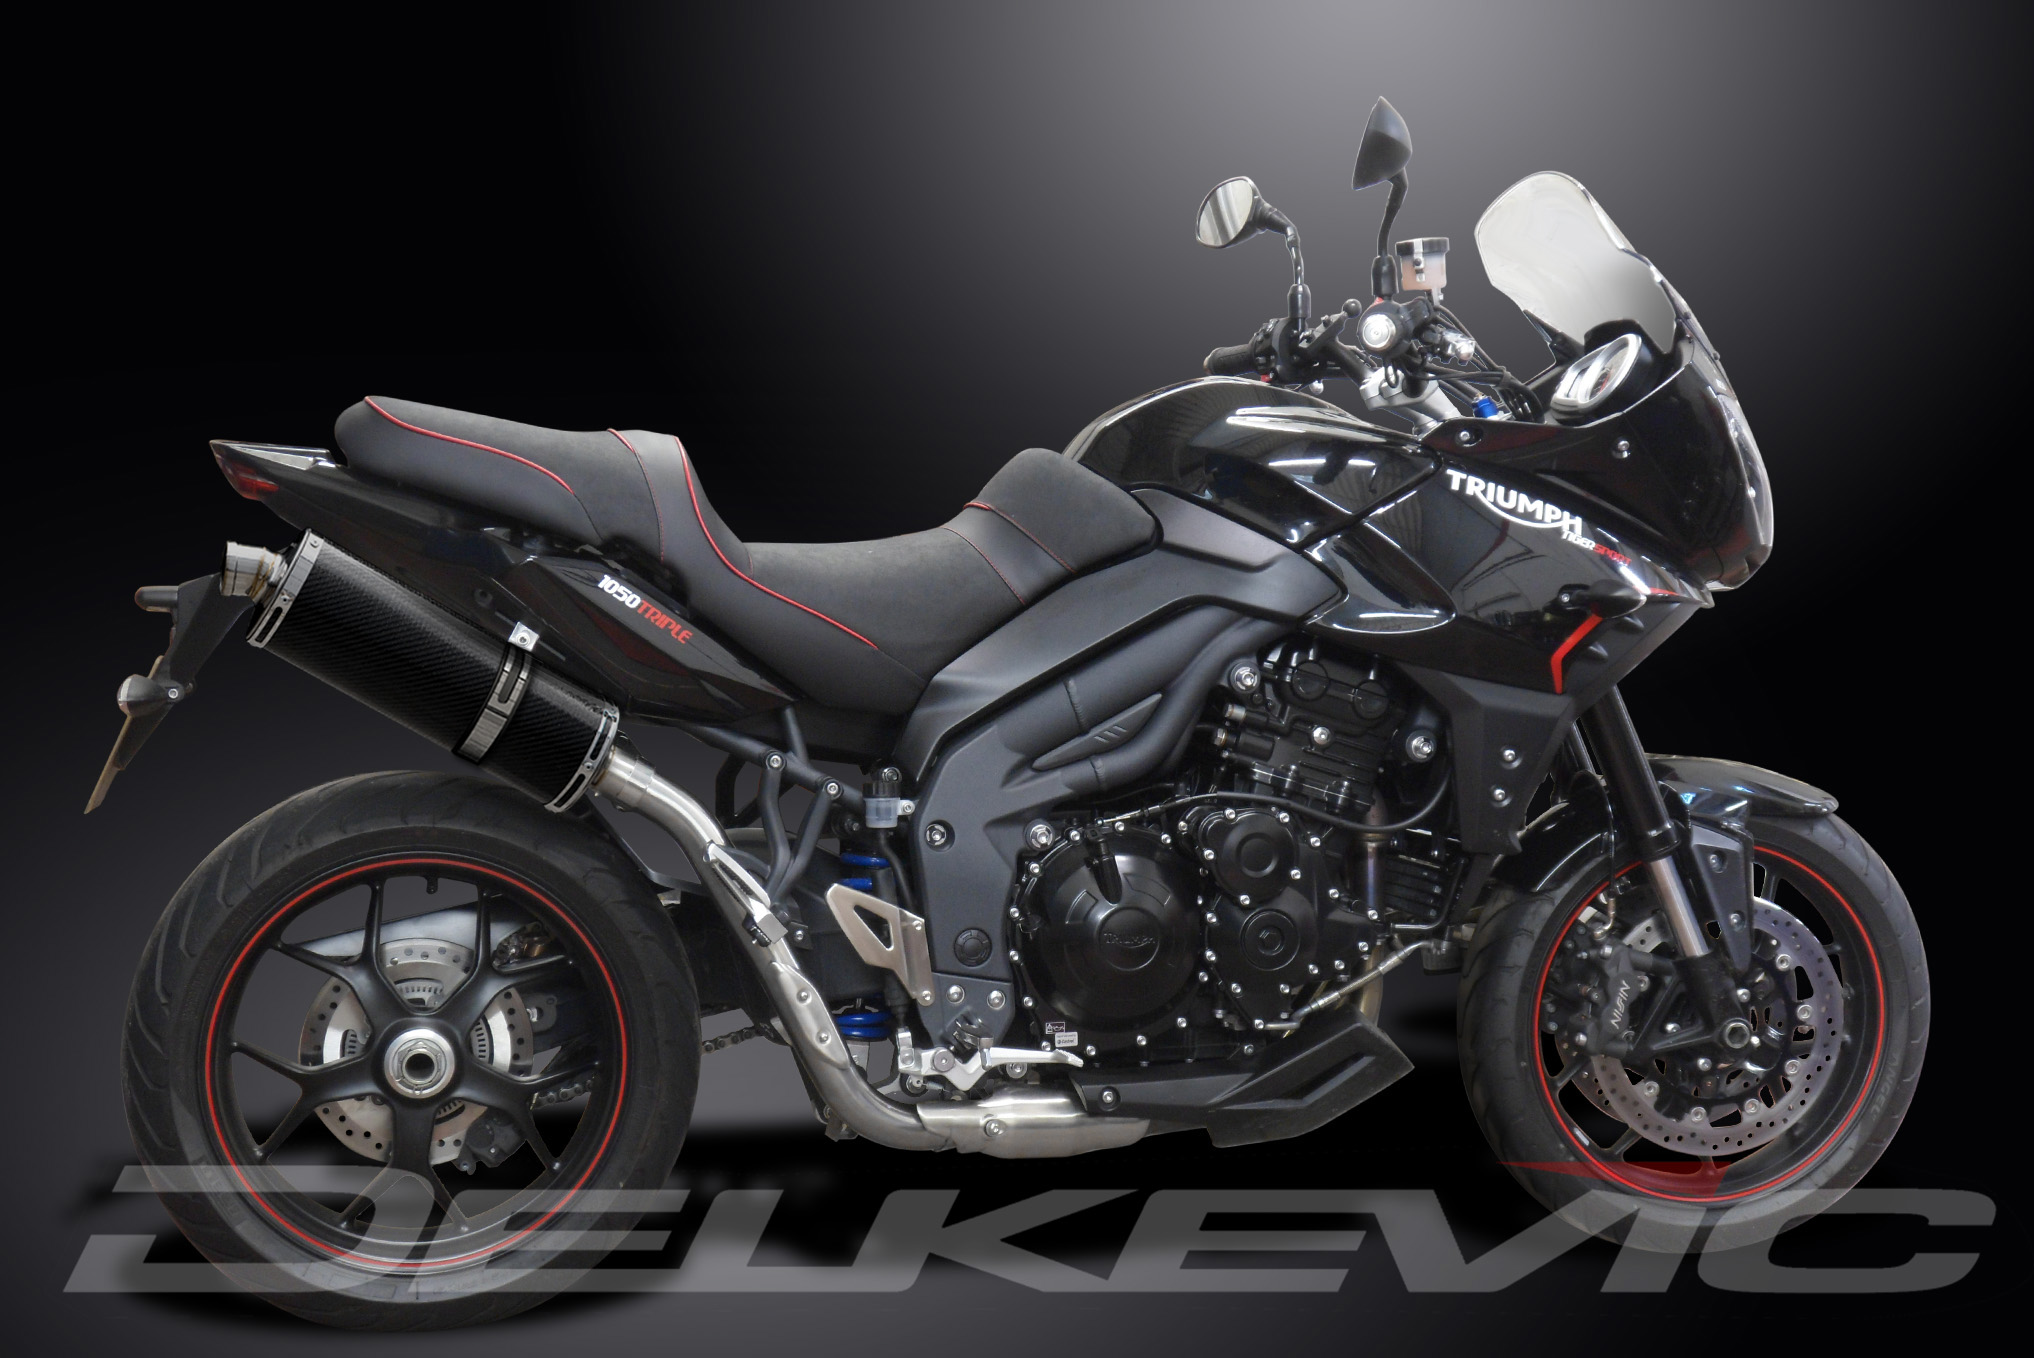 triumph tiger sport 1050 delkevic exhaust. Black Bedroom Furniture Sets. Home Design Ideas